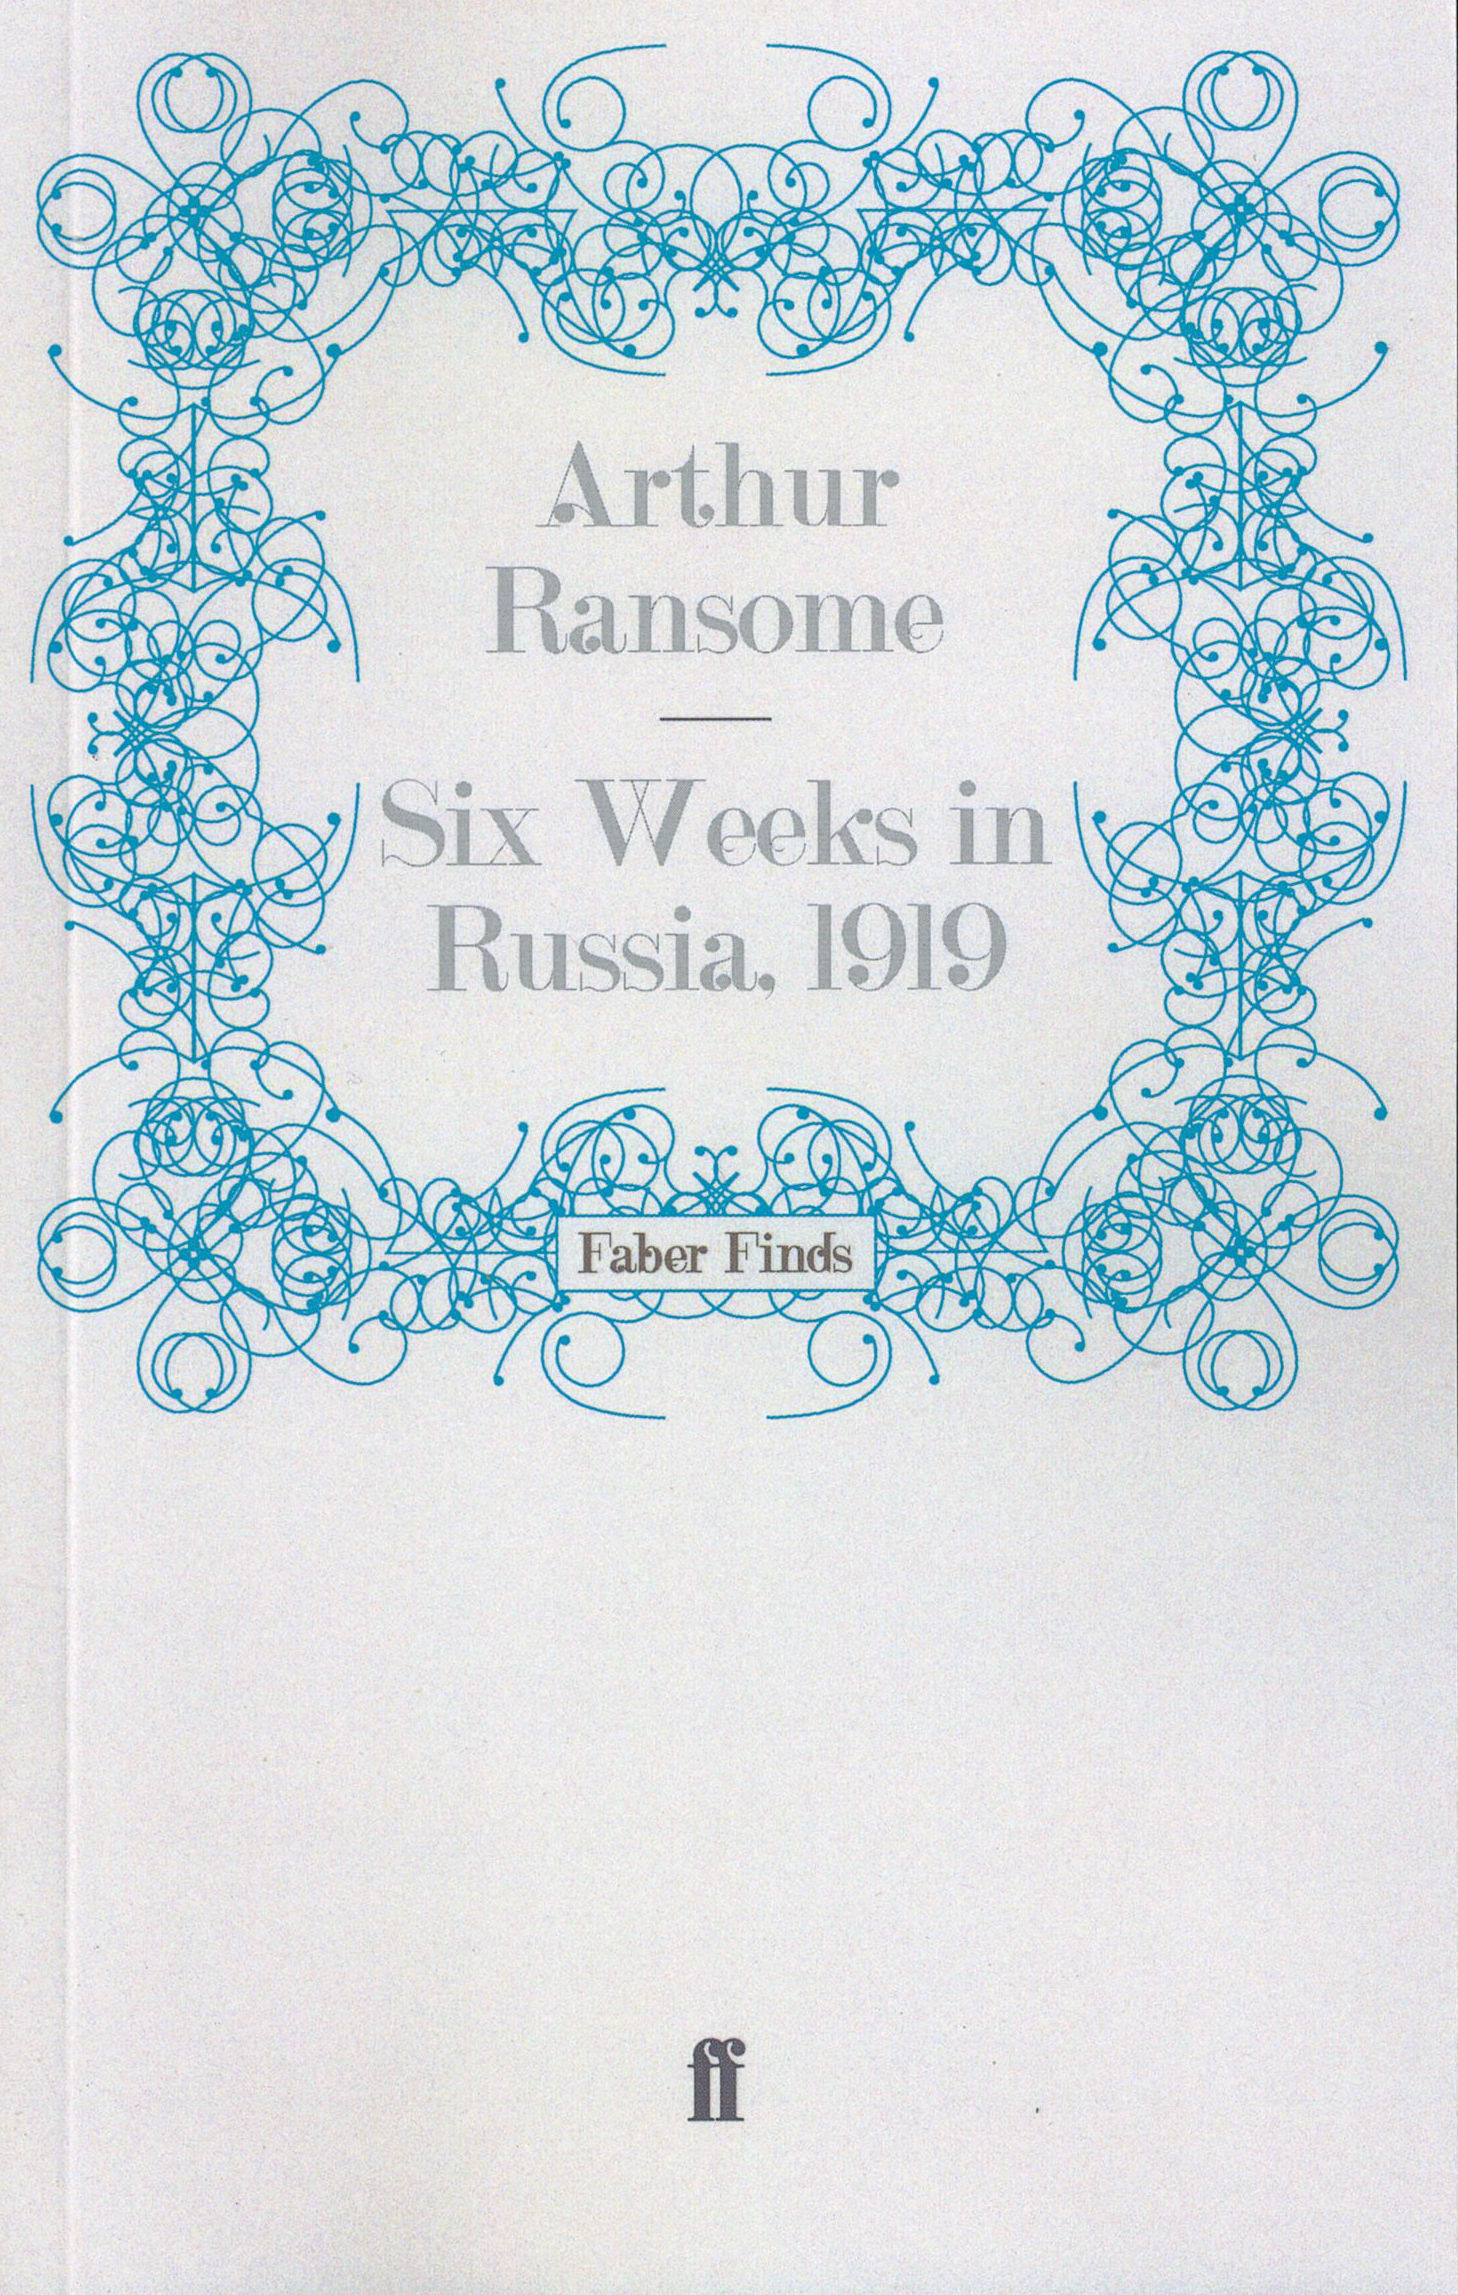 cover of Faber Finds edition of six weeks in Russia